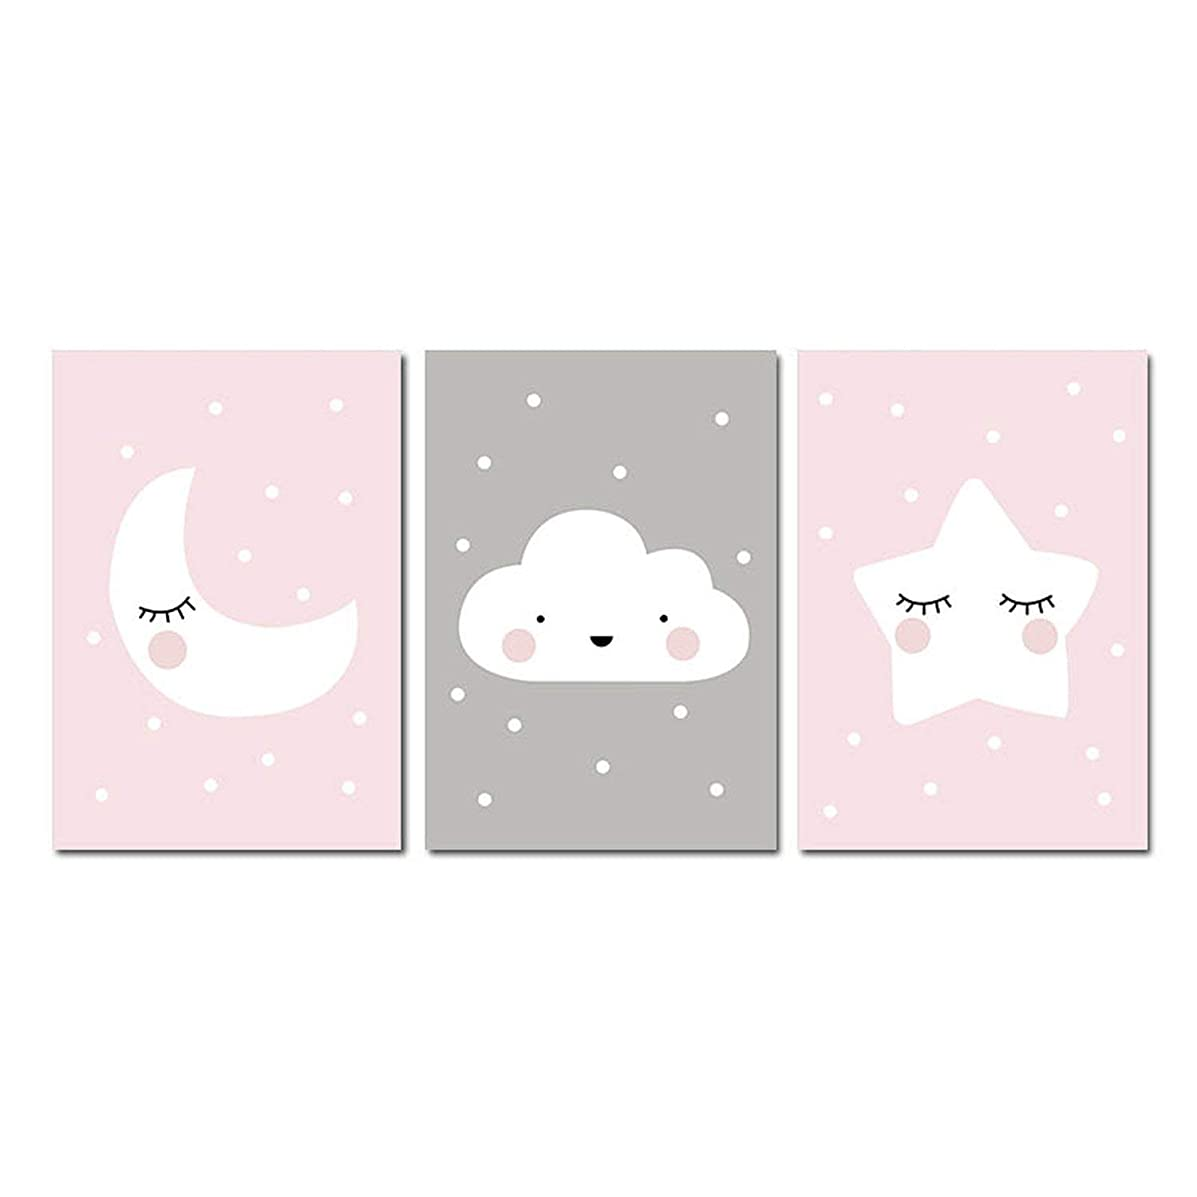 ACOMY Pink Moon Cloud Star Nursery Child Poster Cute Art Decorative Print Wall Painting Decoration Picture Nordic Kid Baby Room Decor,A4 21x30cm No Frame,3 pcs Set